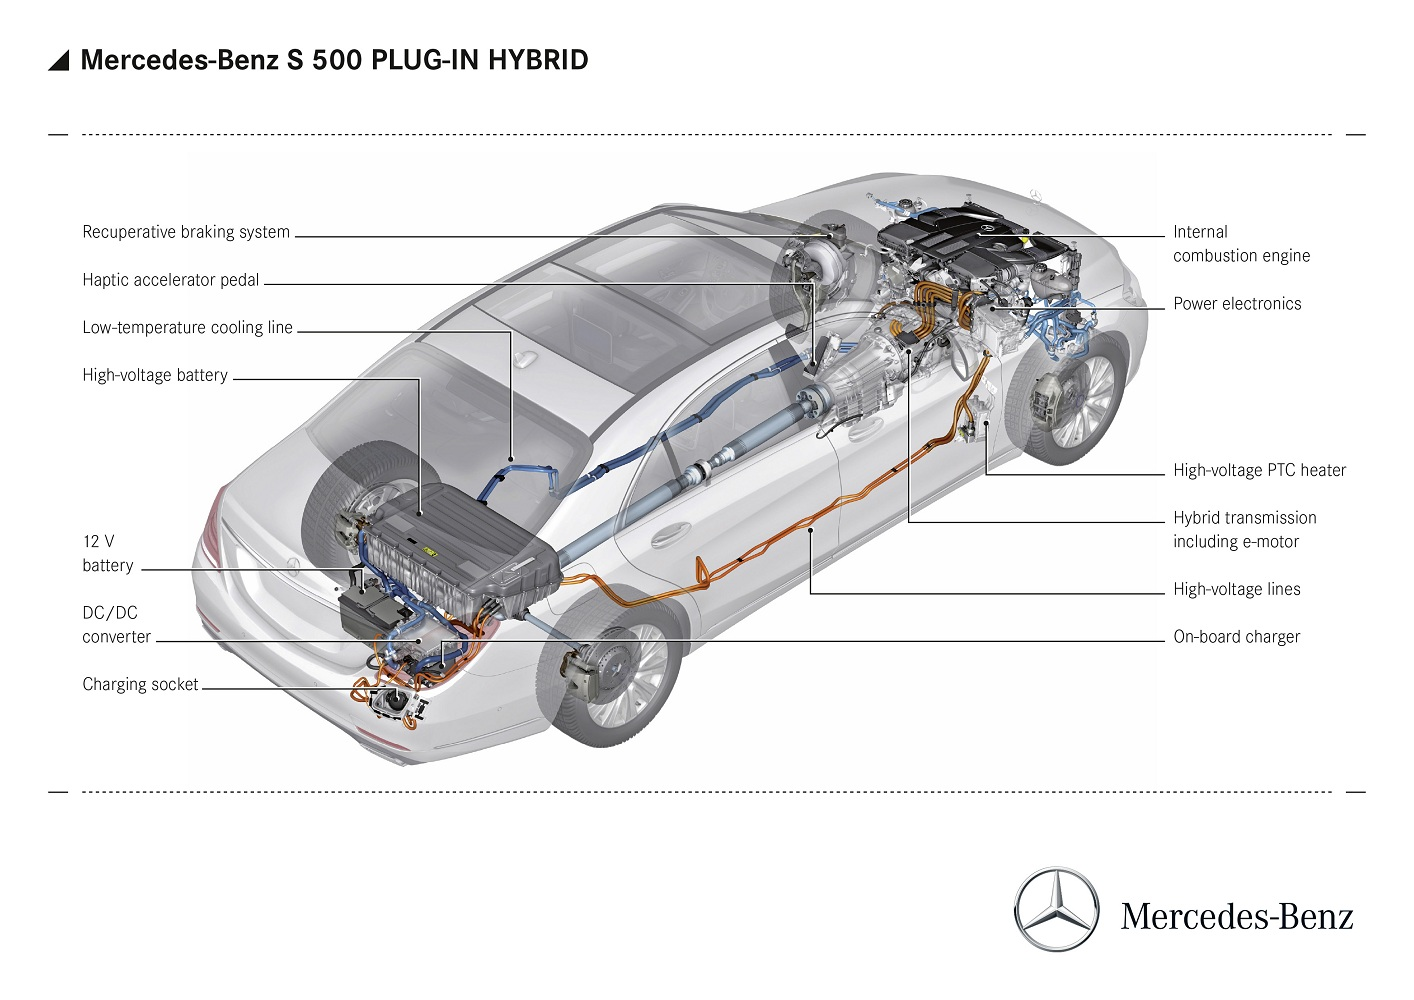 hight resolution of mercedes engine diagram mercedes image wiring the new mercedes s 500 plug in hybrid on mercedes